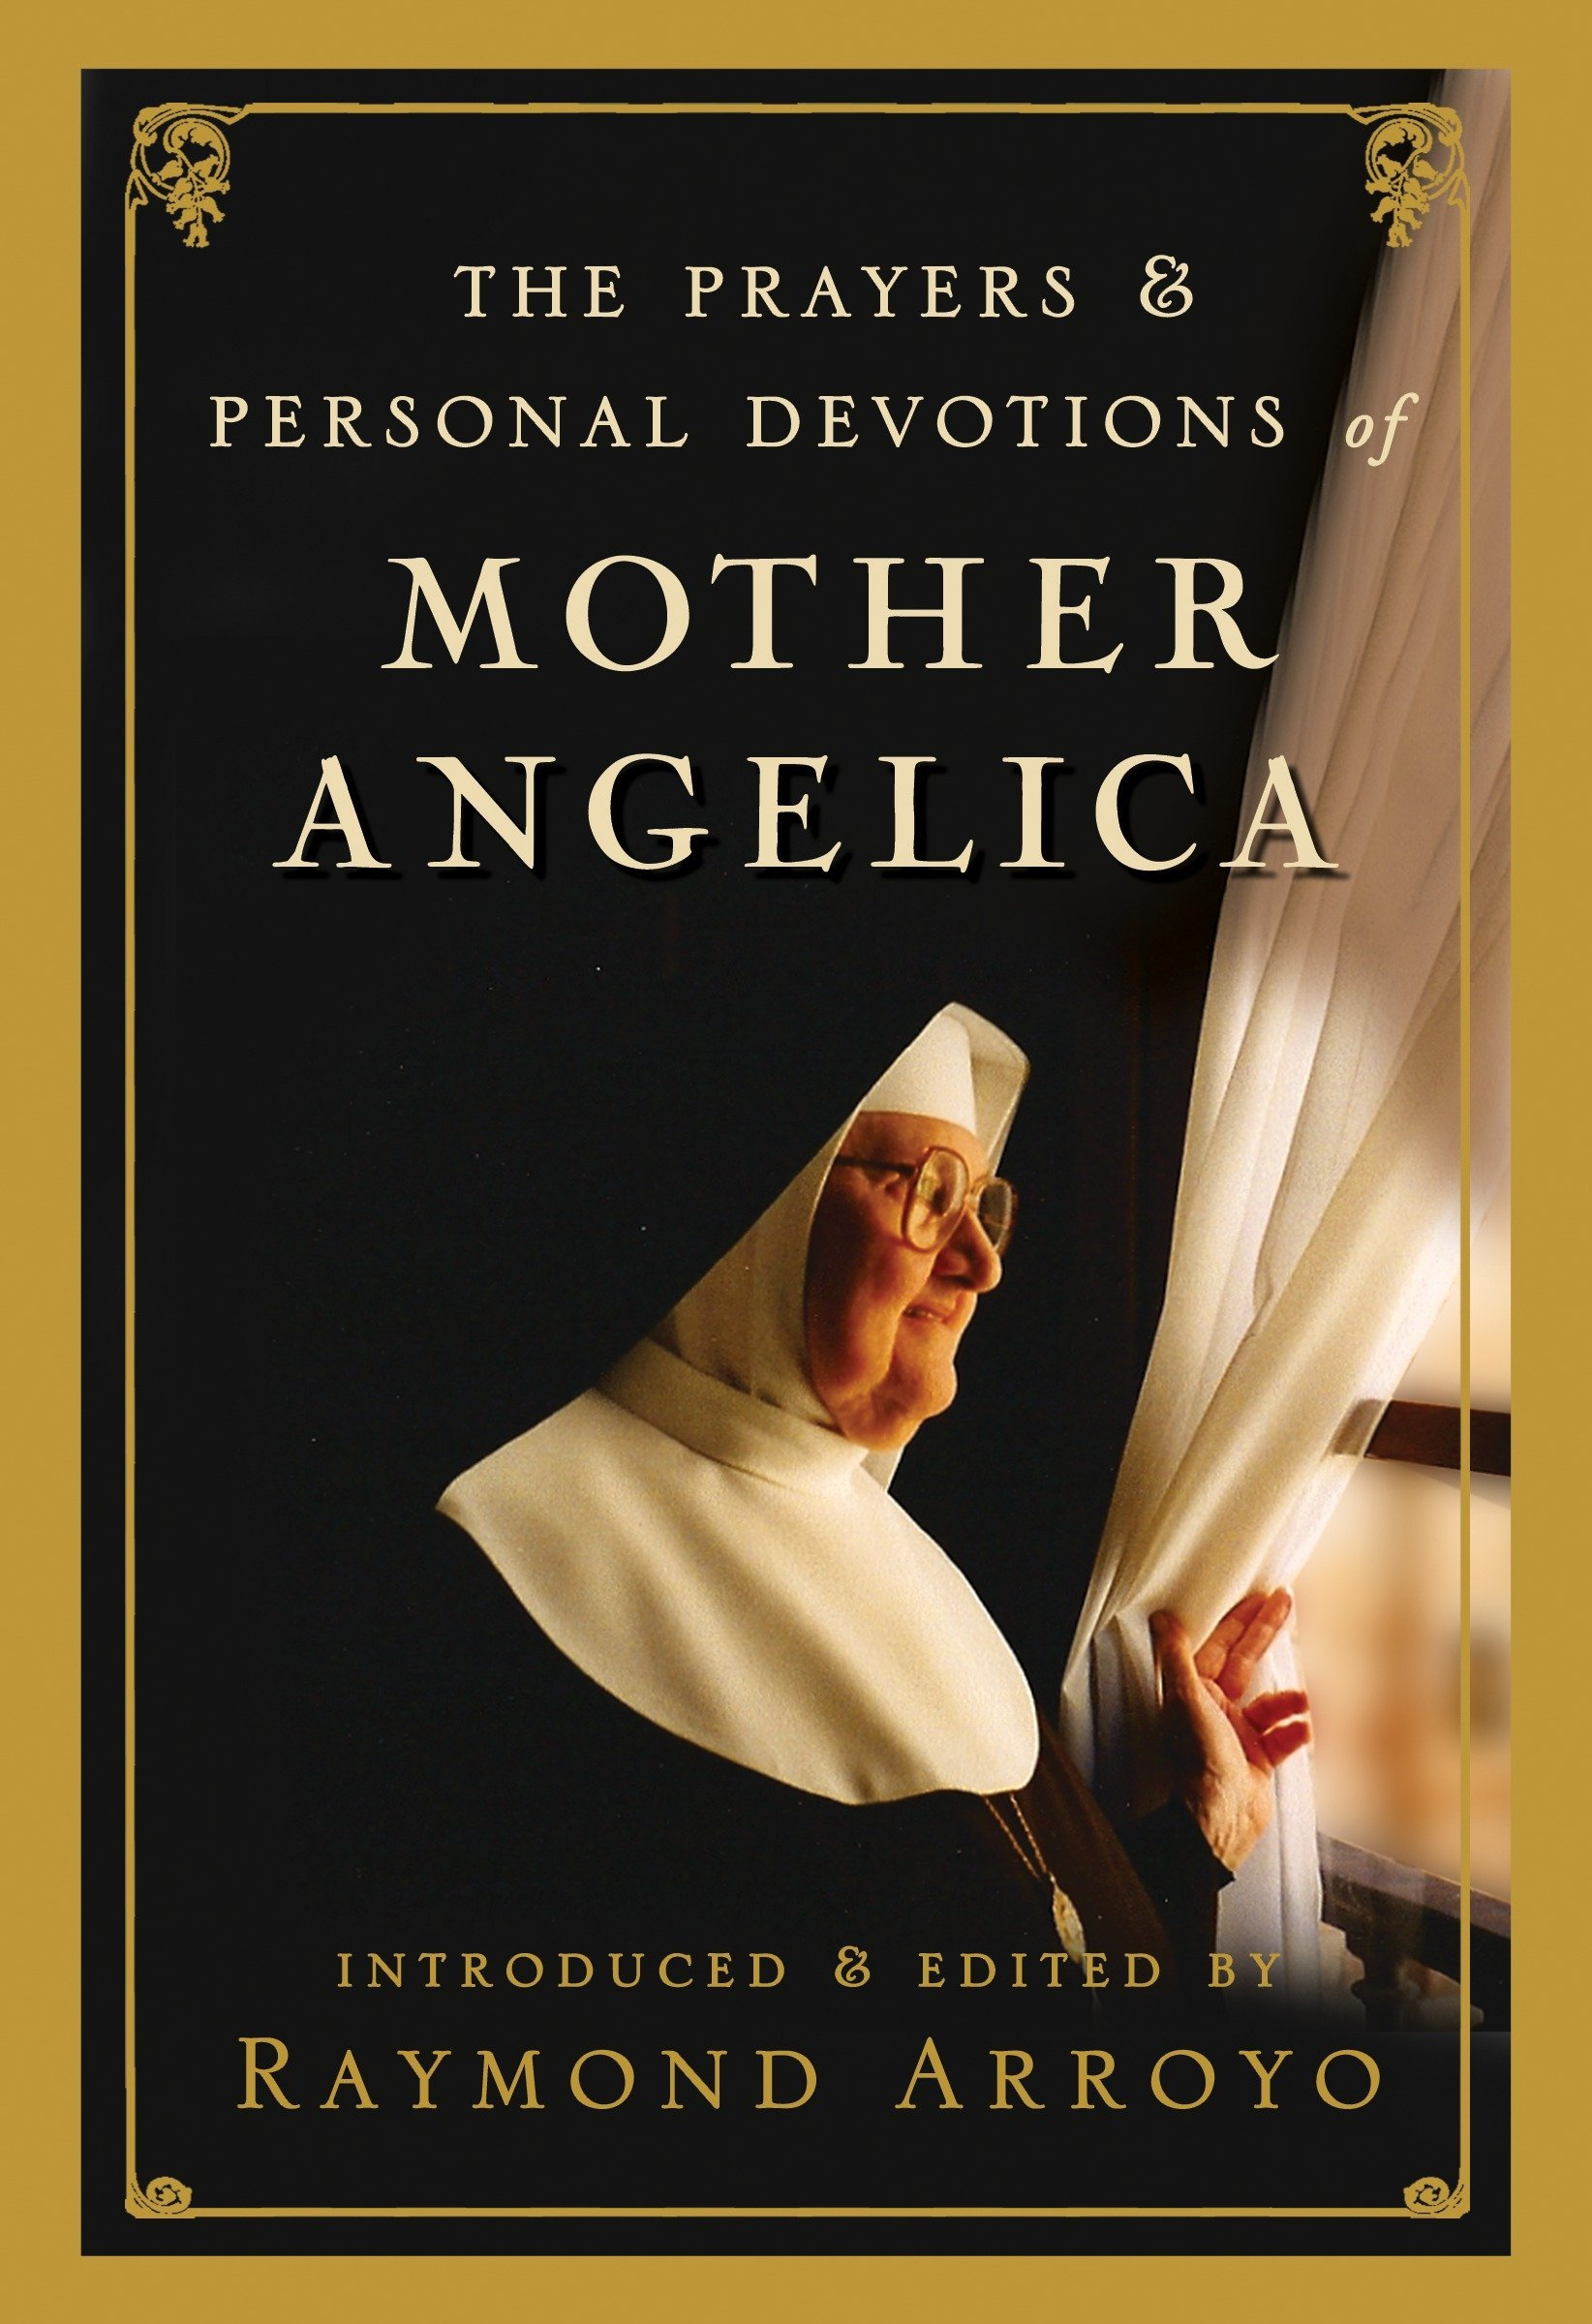 The Prayers and Personal Devotions of Mother Angelica: Raymond Arroyo:  9780307588258: Amazon.com: Books